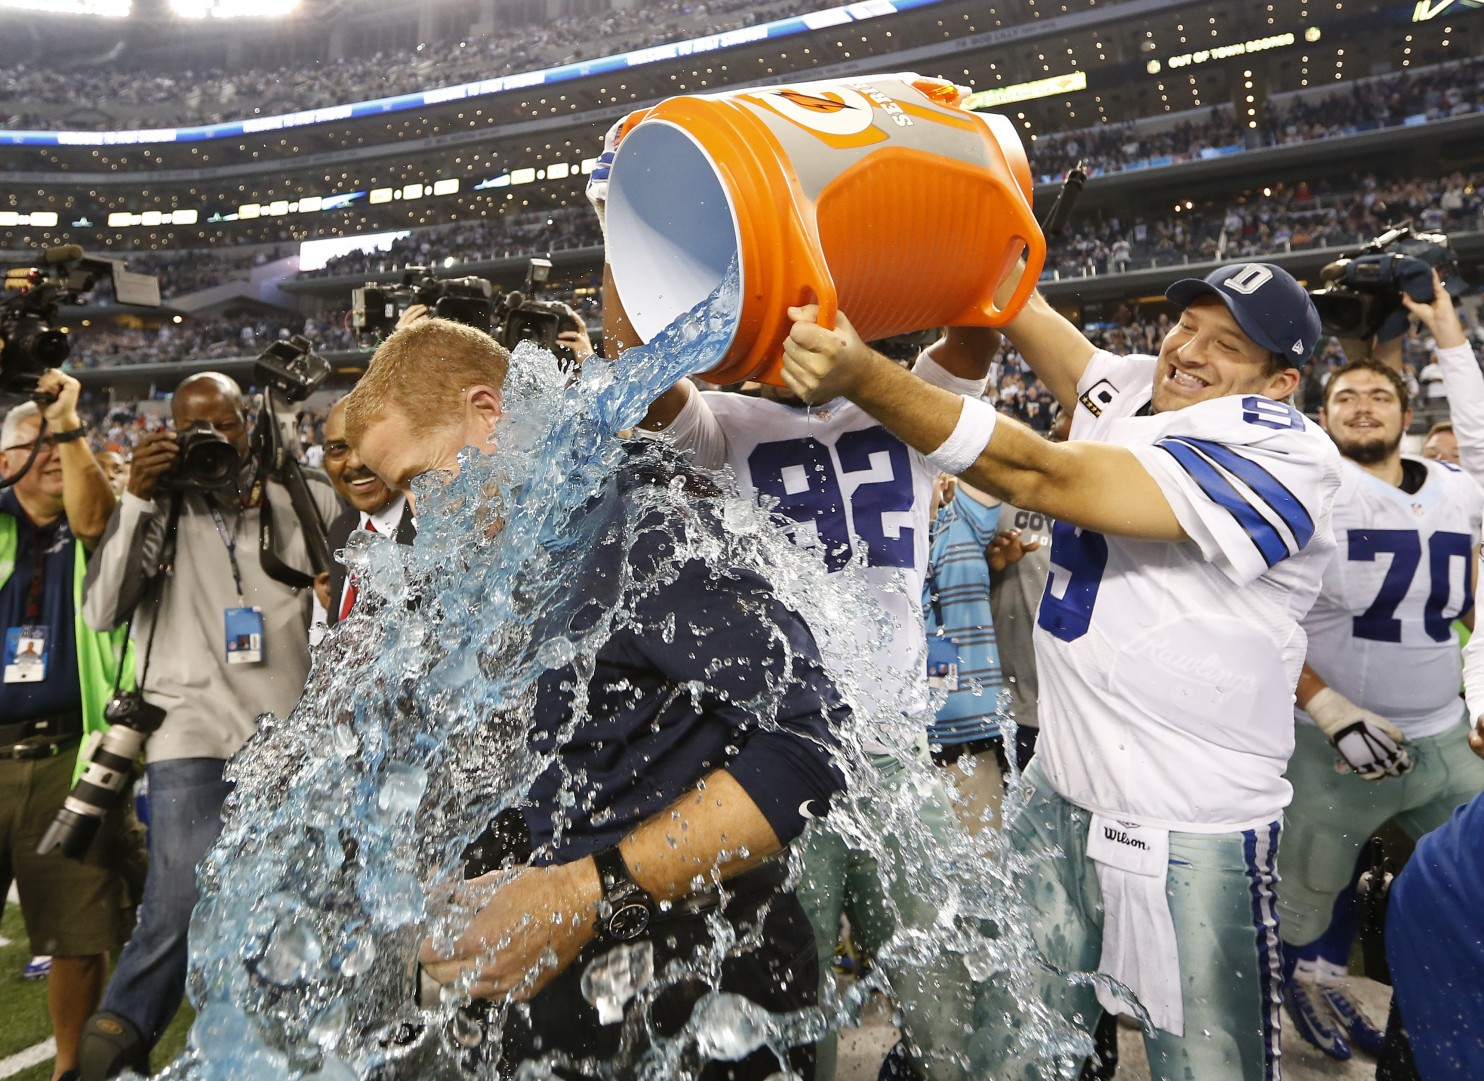 NFC East Blog - The Dallas Cowboys Run The NFC East 10